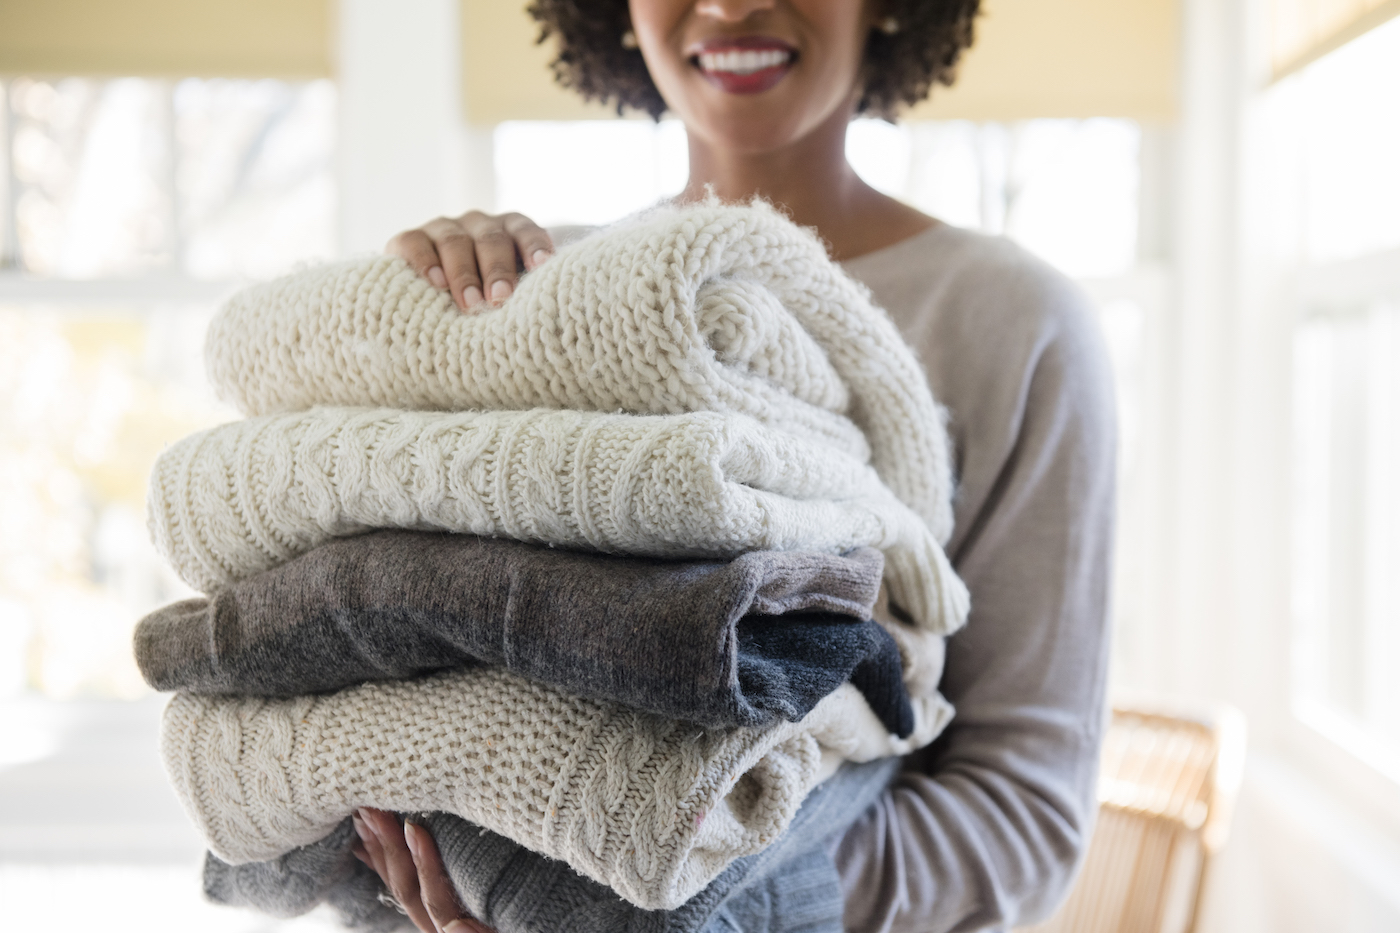 woman carrying stack of folded sweaters with pilling